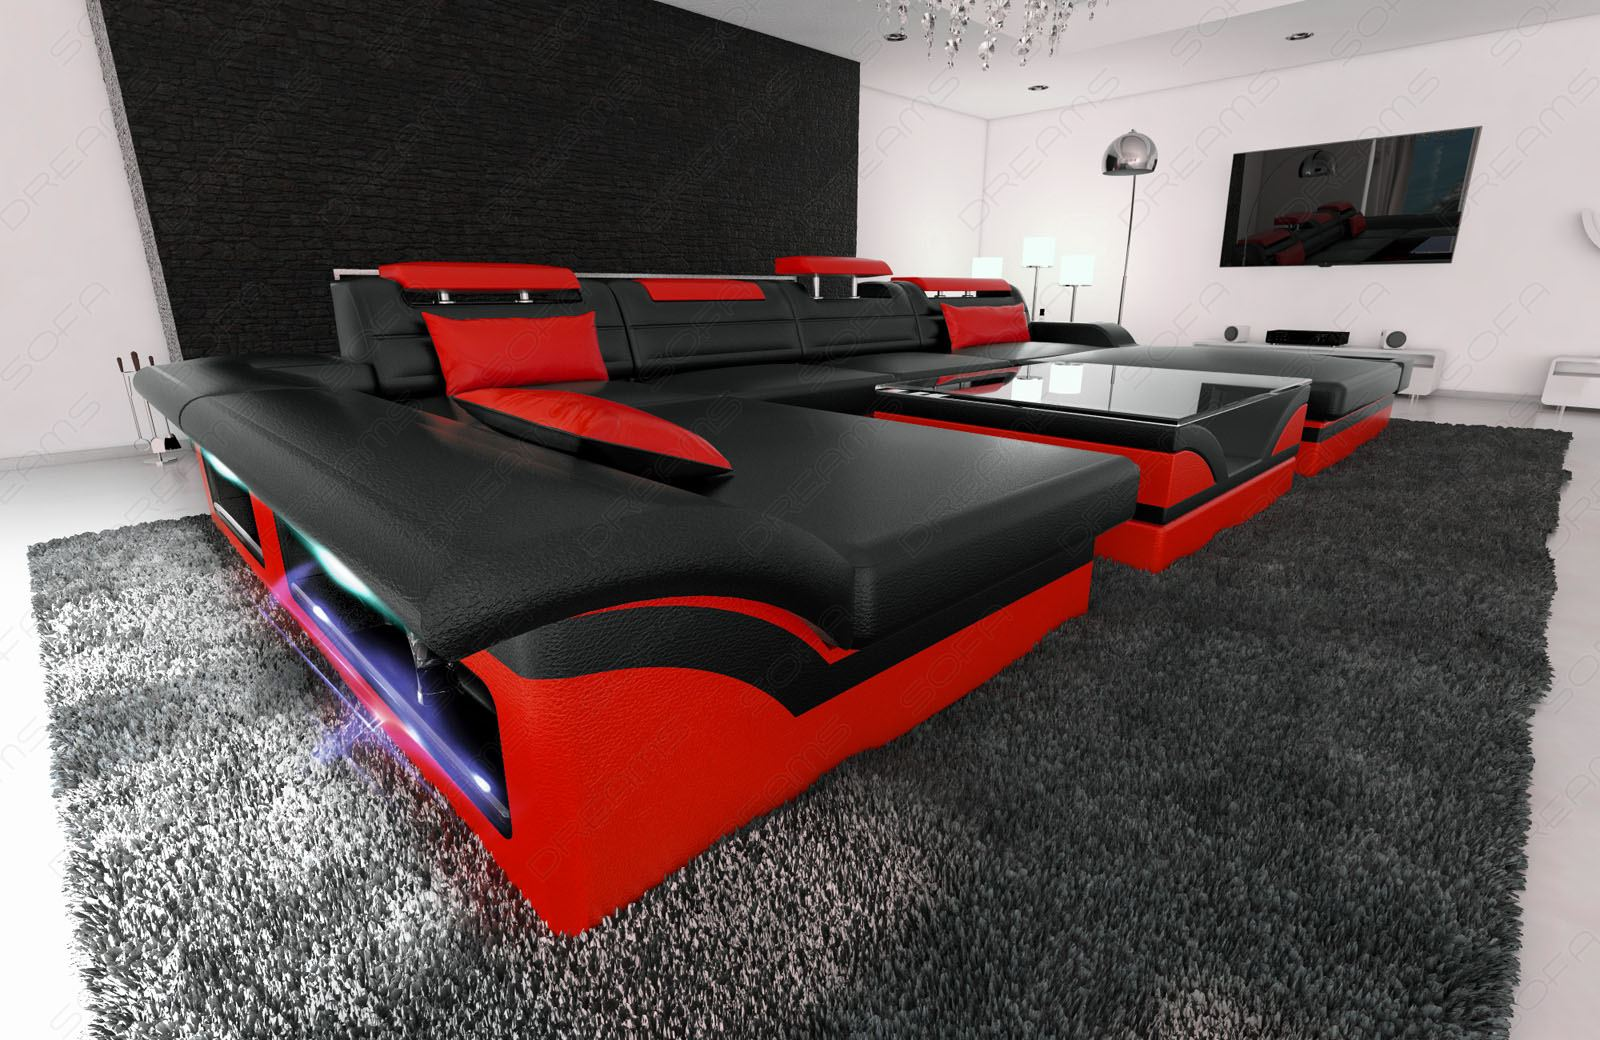 luxussofa wohnlandschaft monza u form designer couch schwarz rot mit led licht ebay. Black Bedroom Furniture Sets. Home Design Ideas